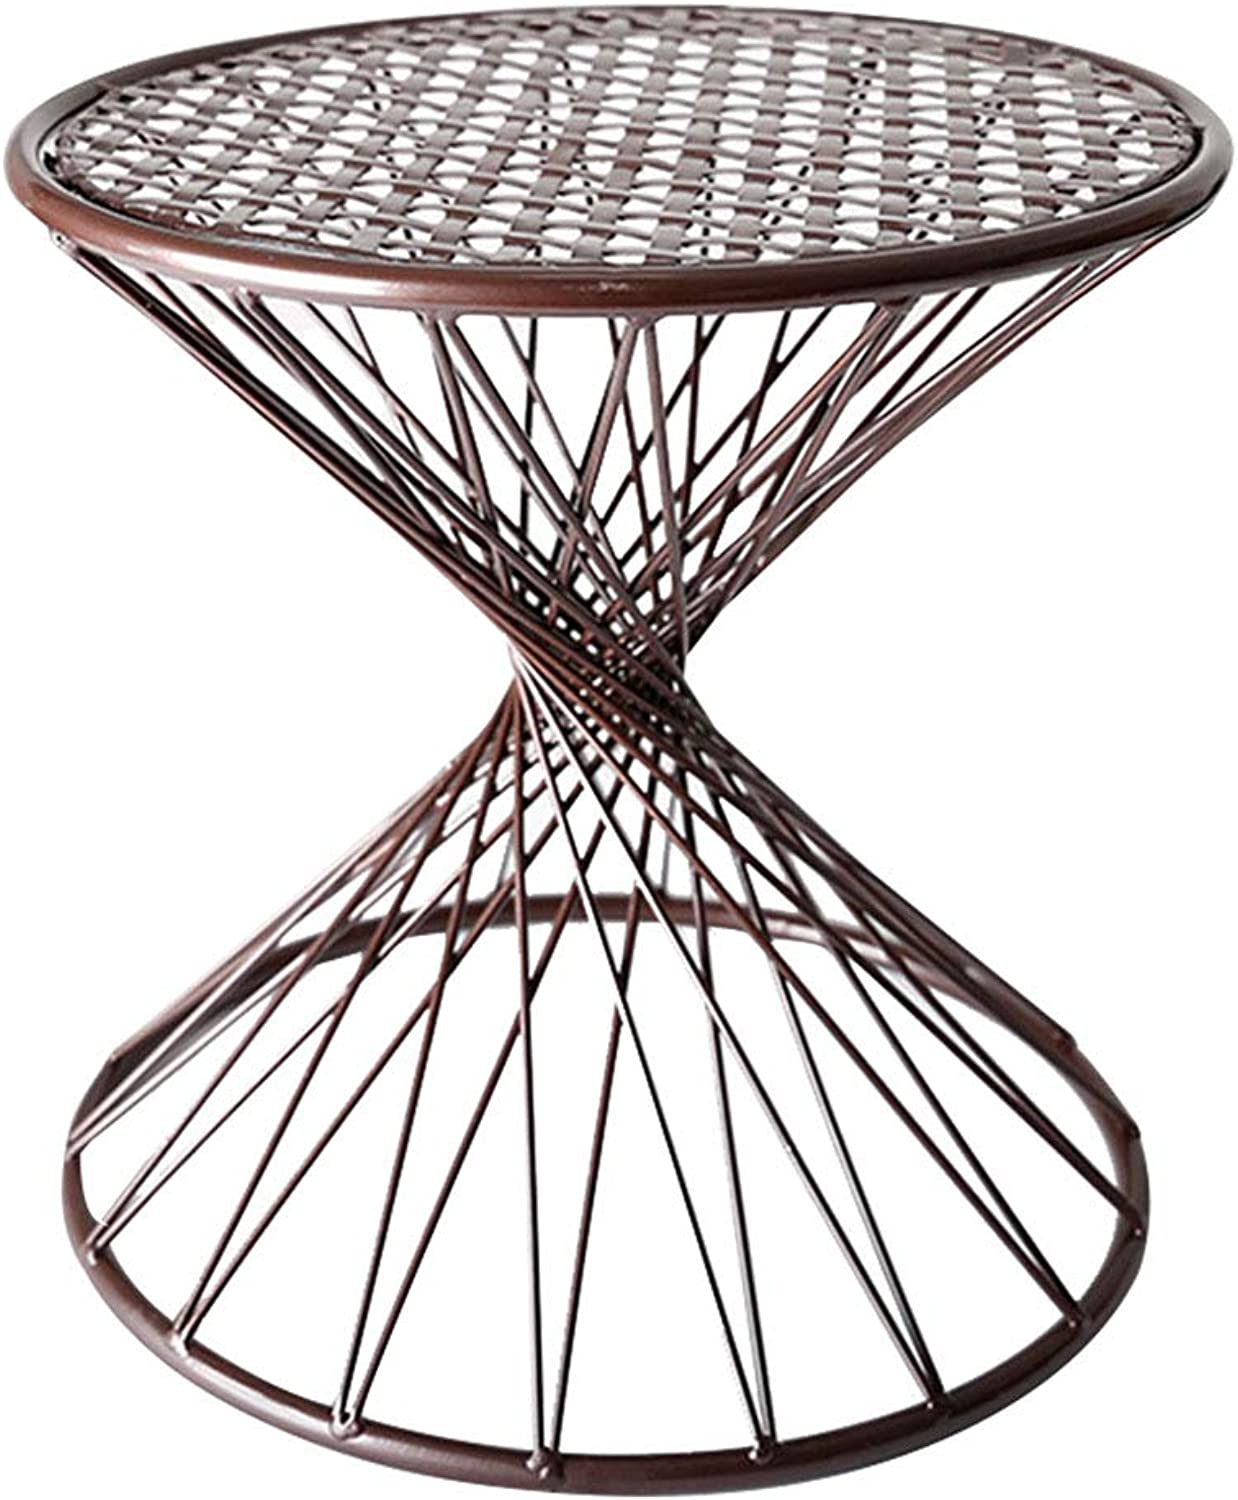 Personality Stool Creative Stool,Strong Load Capacity,Hollow Design,Simple and Modern,Wrought Iron Material,Suitable for Everyone,Suitable for Living Room,Study,Optional (Black,Copper), 30x30cm